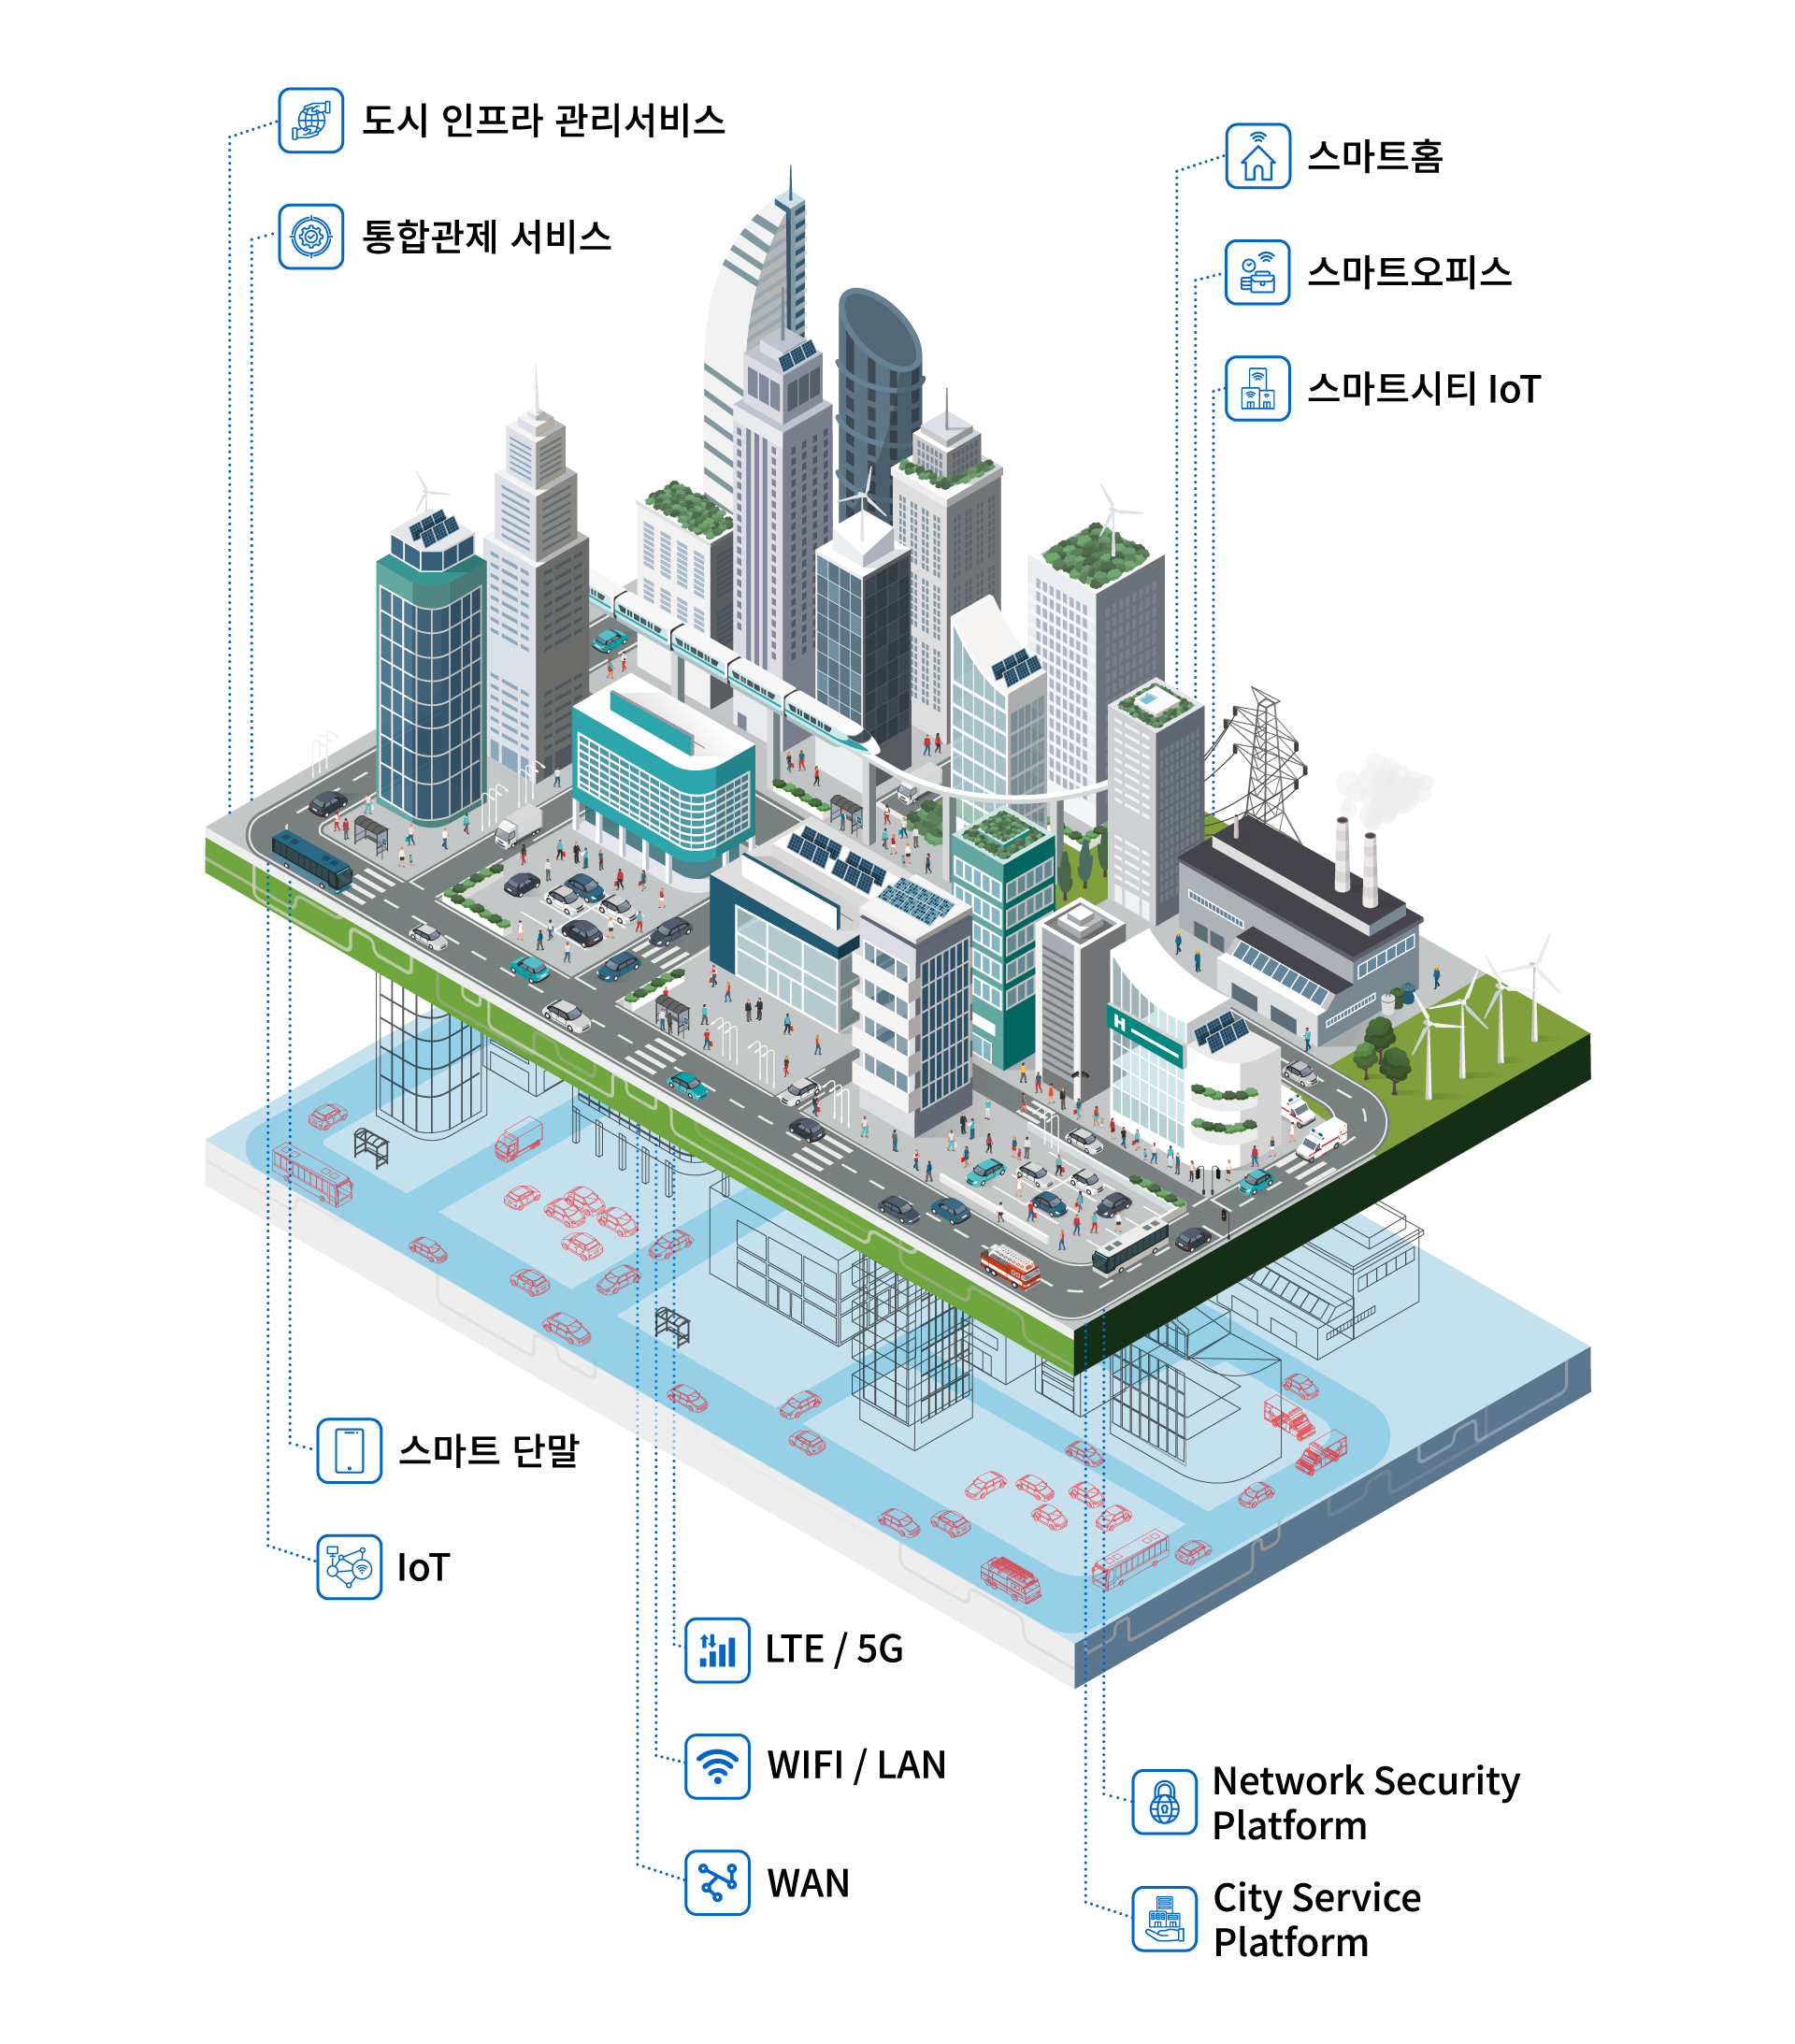 Cannot get smartcity MPC based security management system img